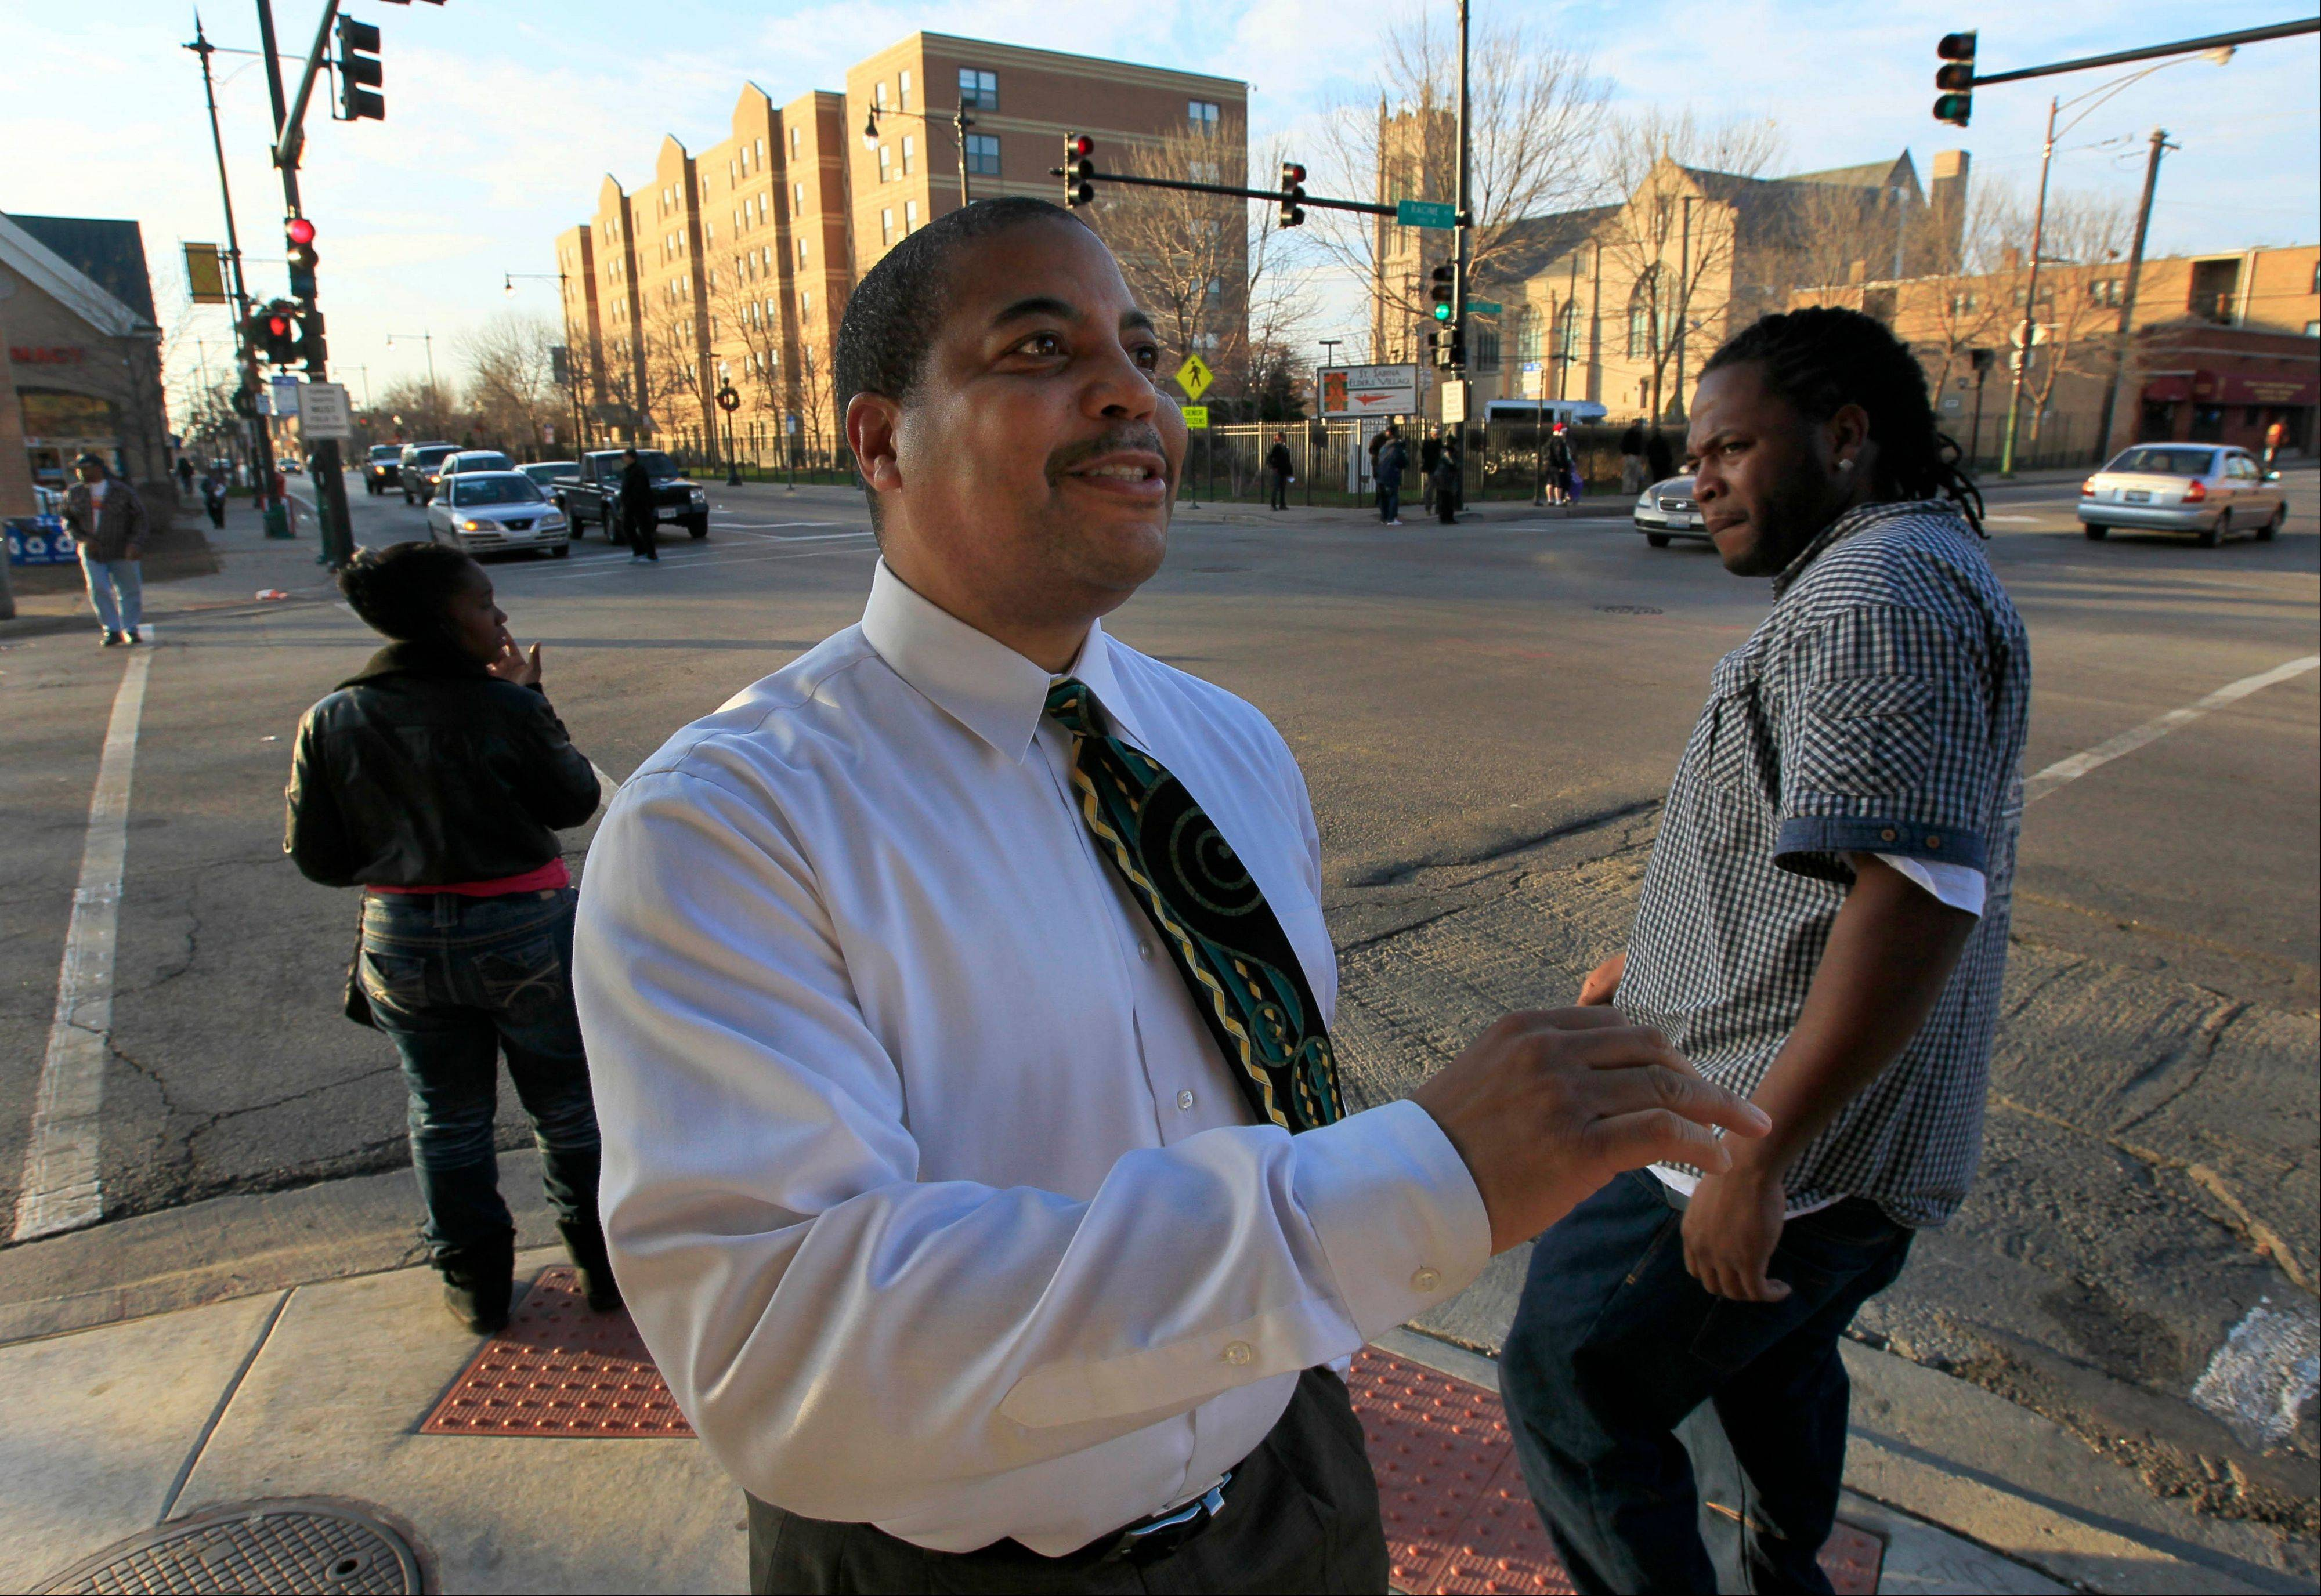 Carlos Nelson, head of the Greater Auburn Gresham Development Corp., talks about the troubled neighborhood's future on Chicago's South Side earlier this month.